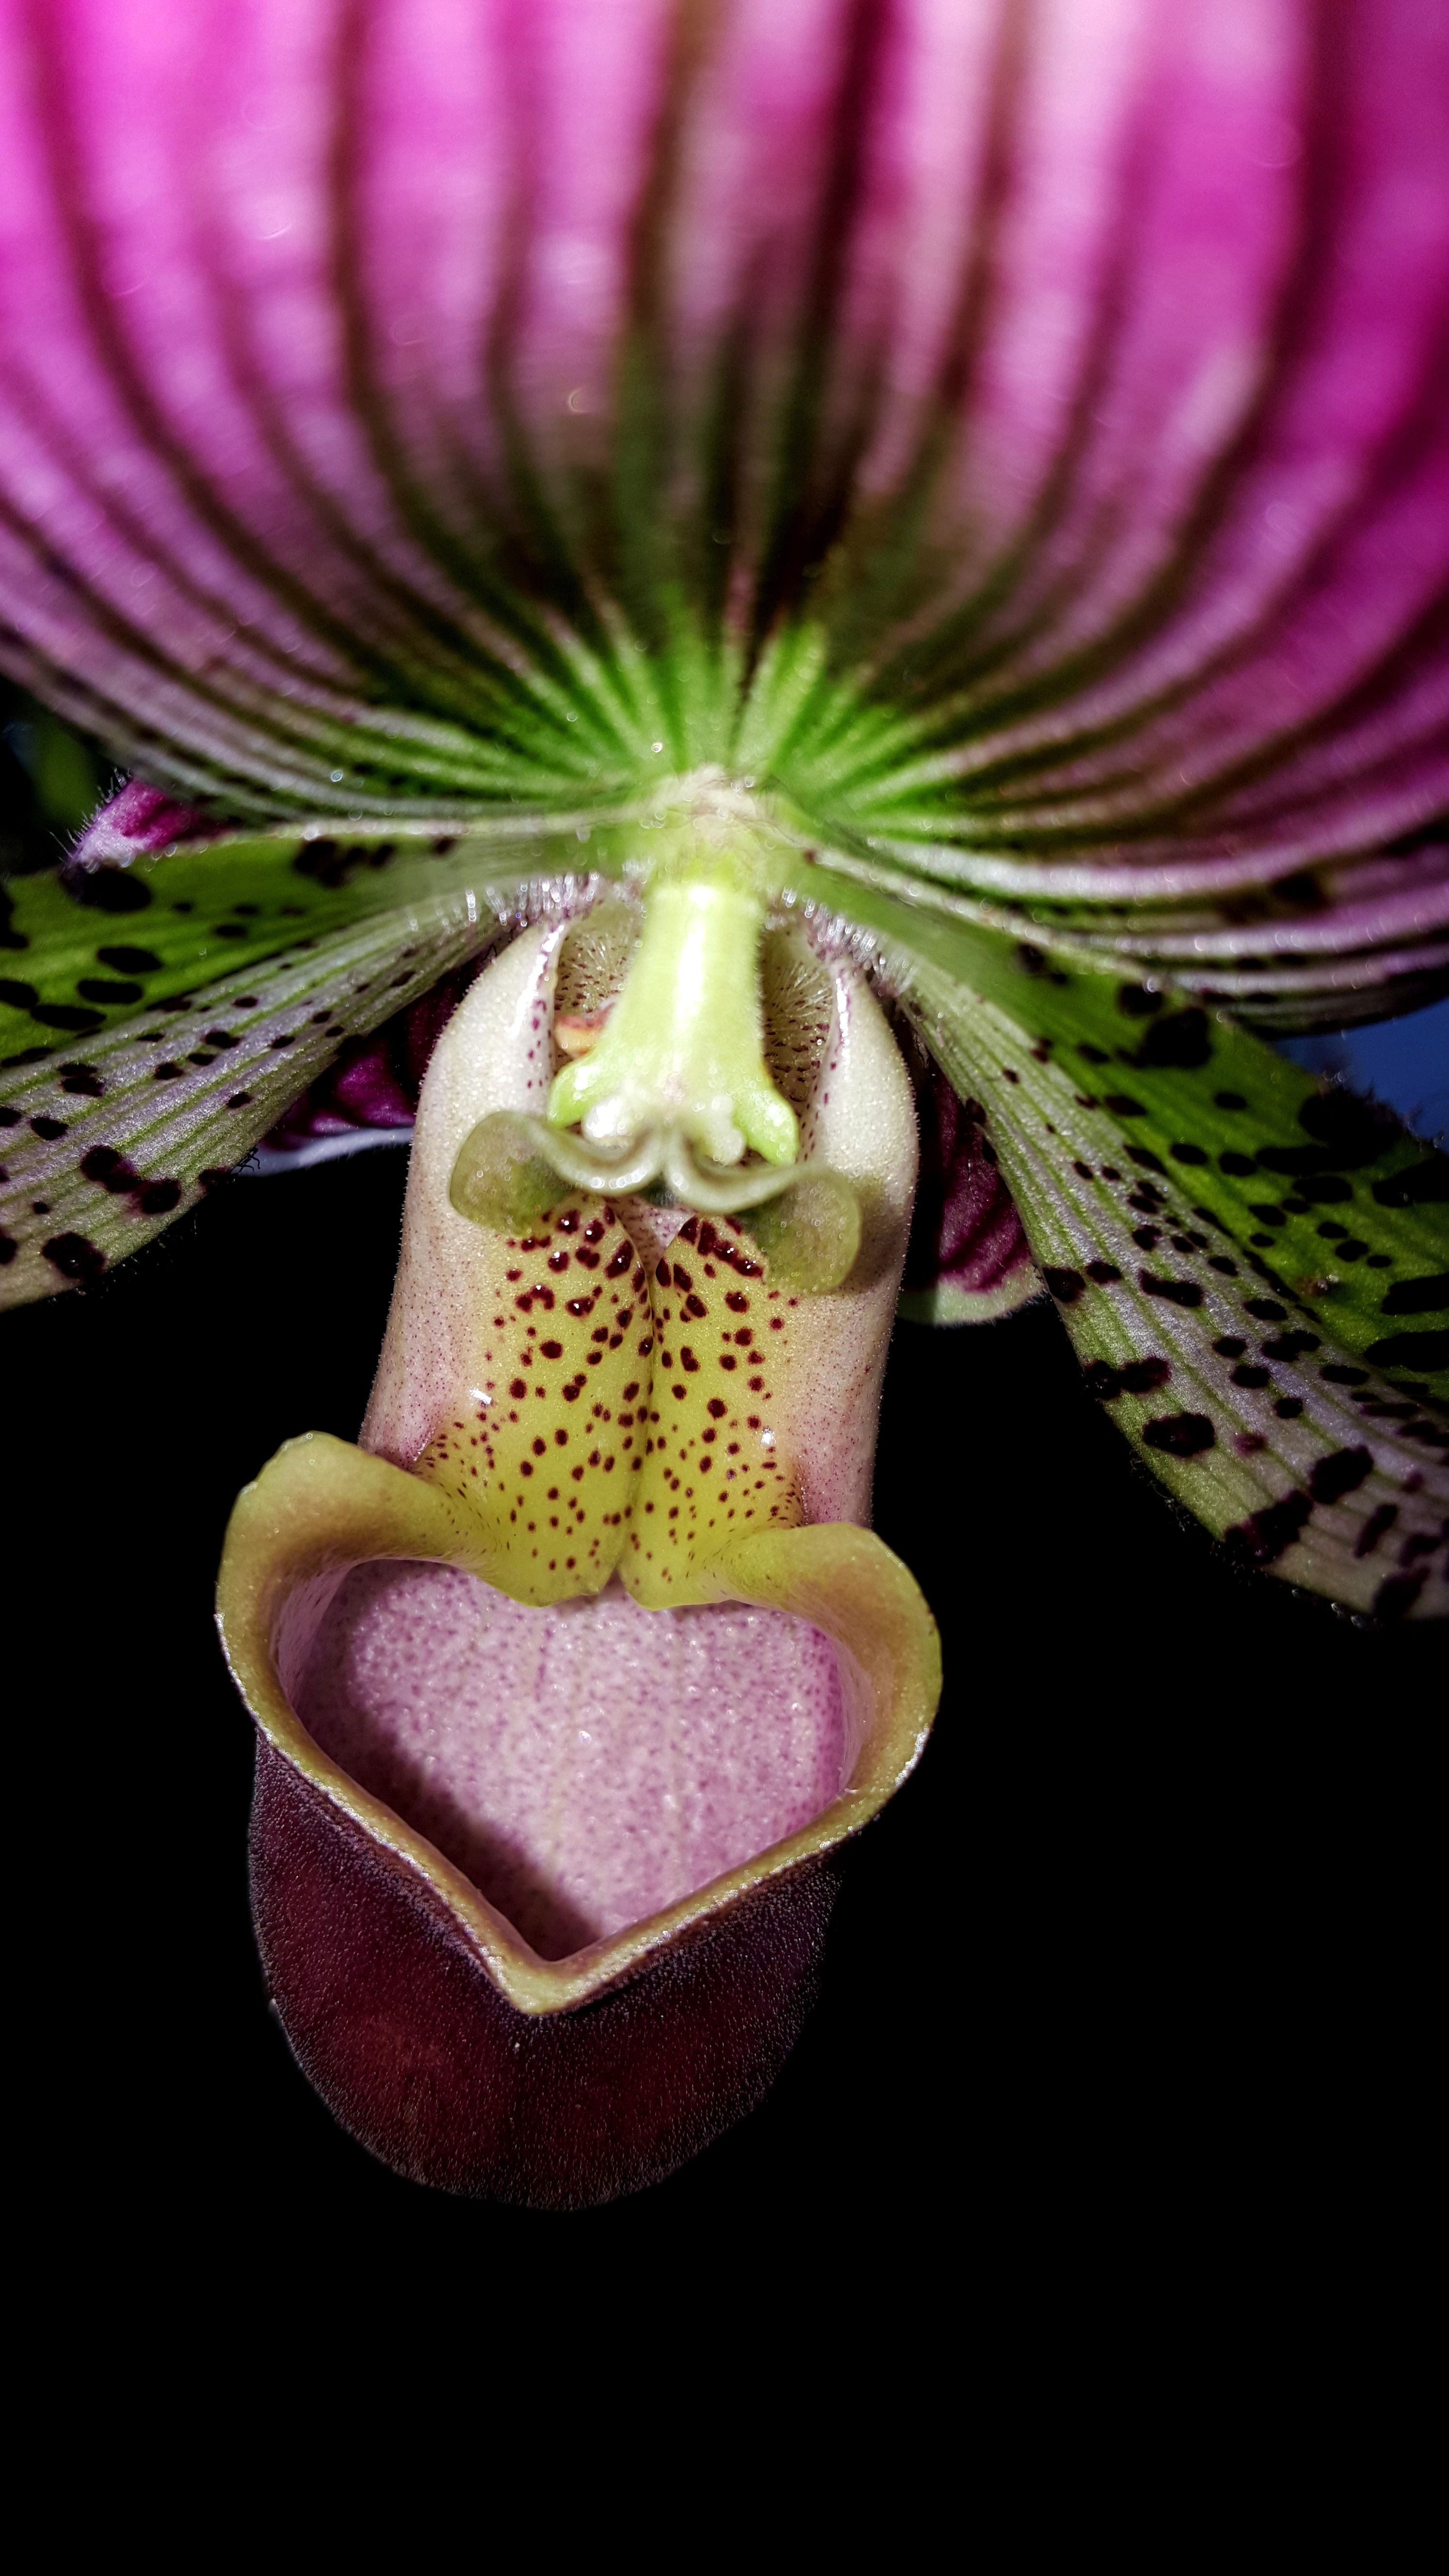 This Beauty Is A Paphilpedilum Lady Slipper Created By Crossing An